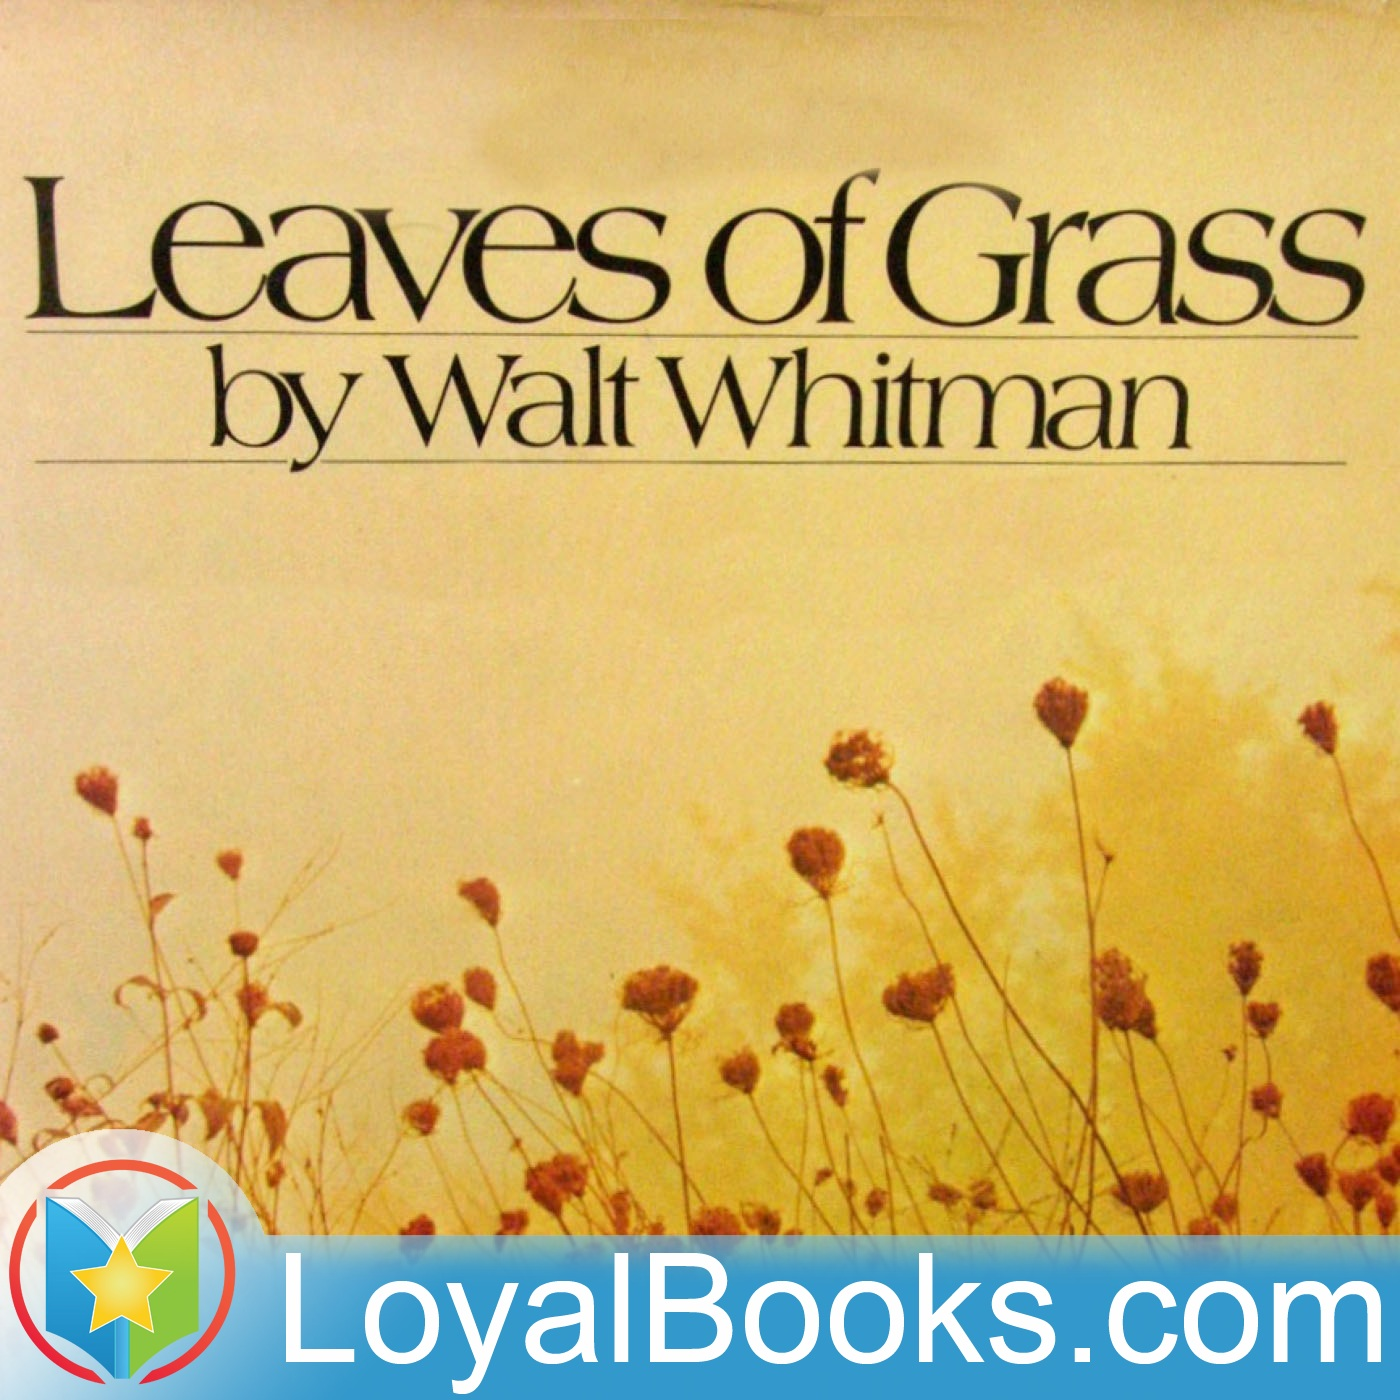 <![CDATA[Leaves of Grass by Walt Whitman]]>